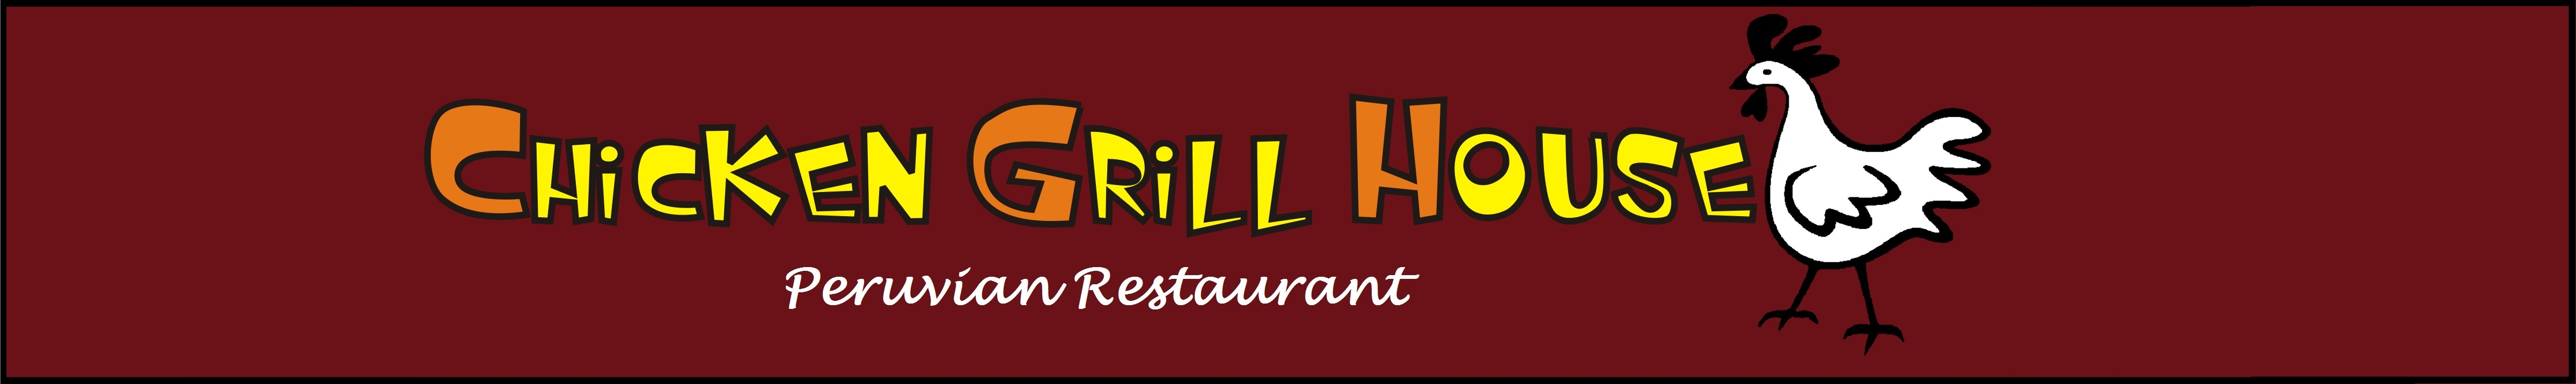 Chicken Grill House